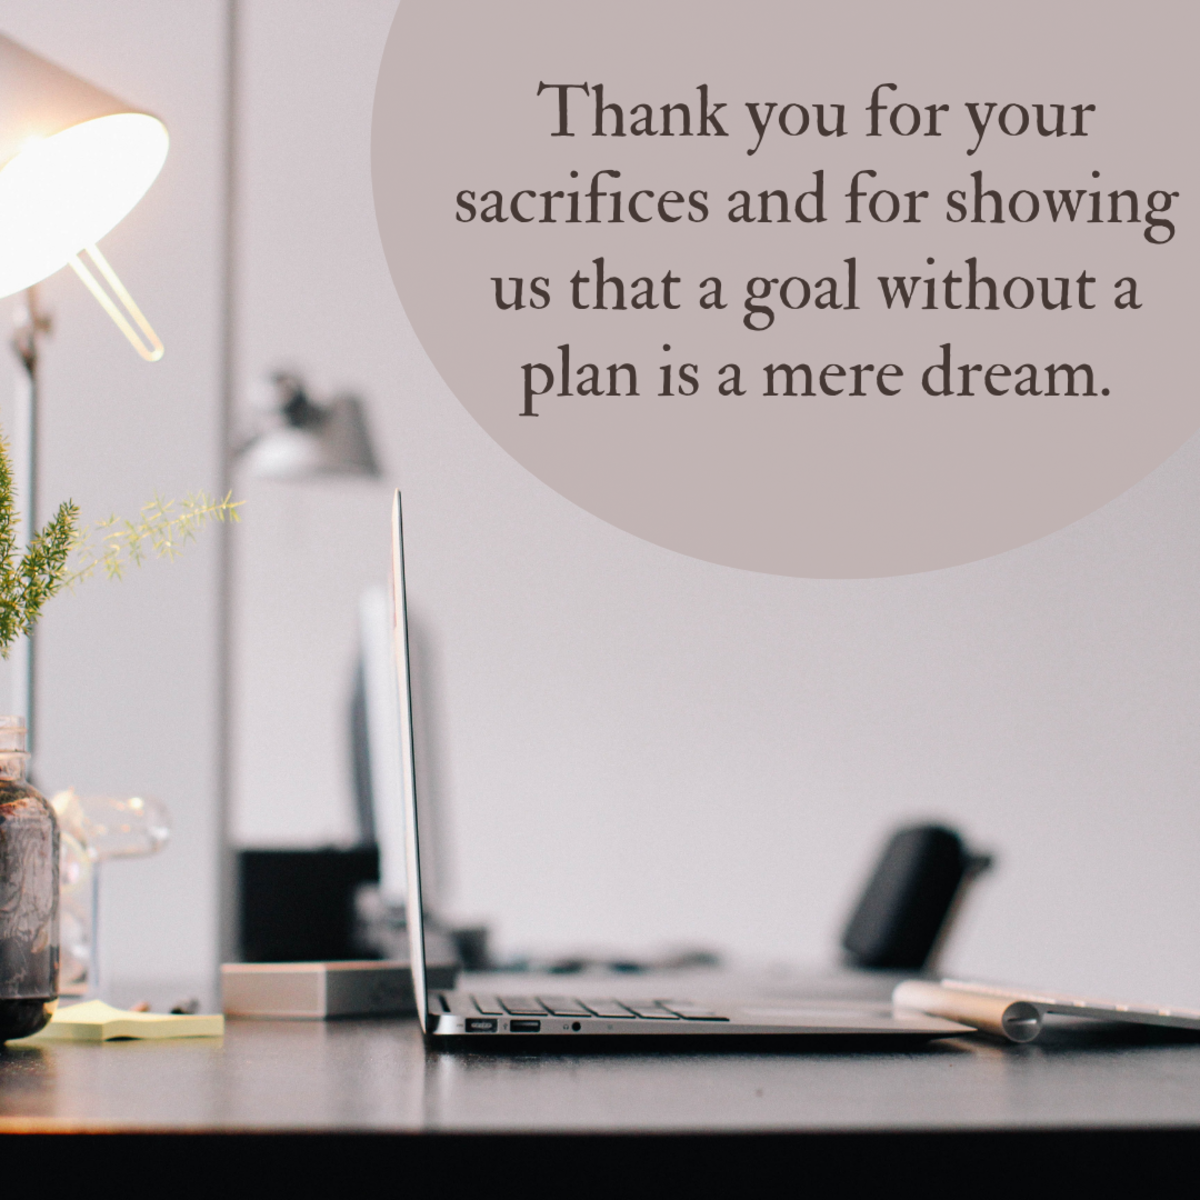 Great teachers and mentors sacrifice their time teaching us and showing us the meaning of hard work. Tell them how much that means to you in a heartfelt goodbye note or letter.